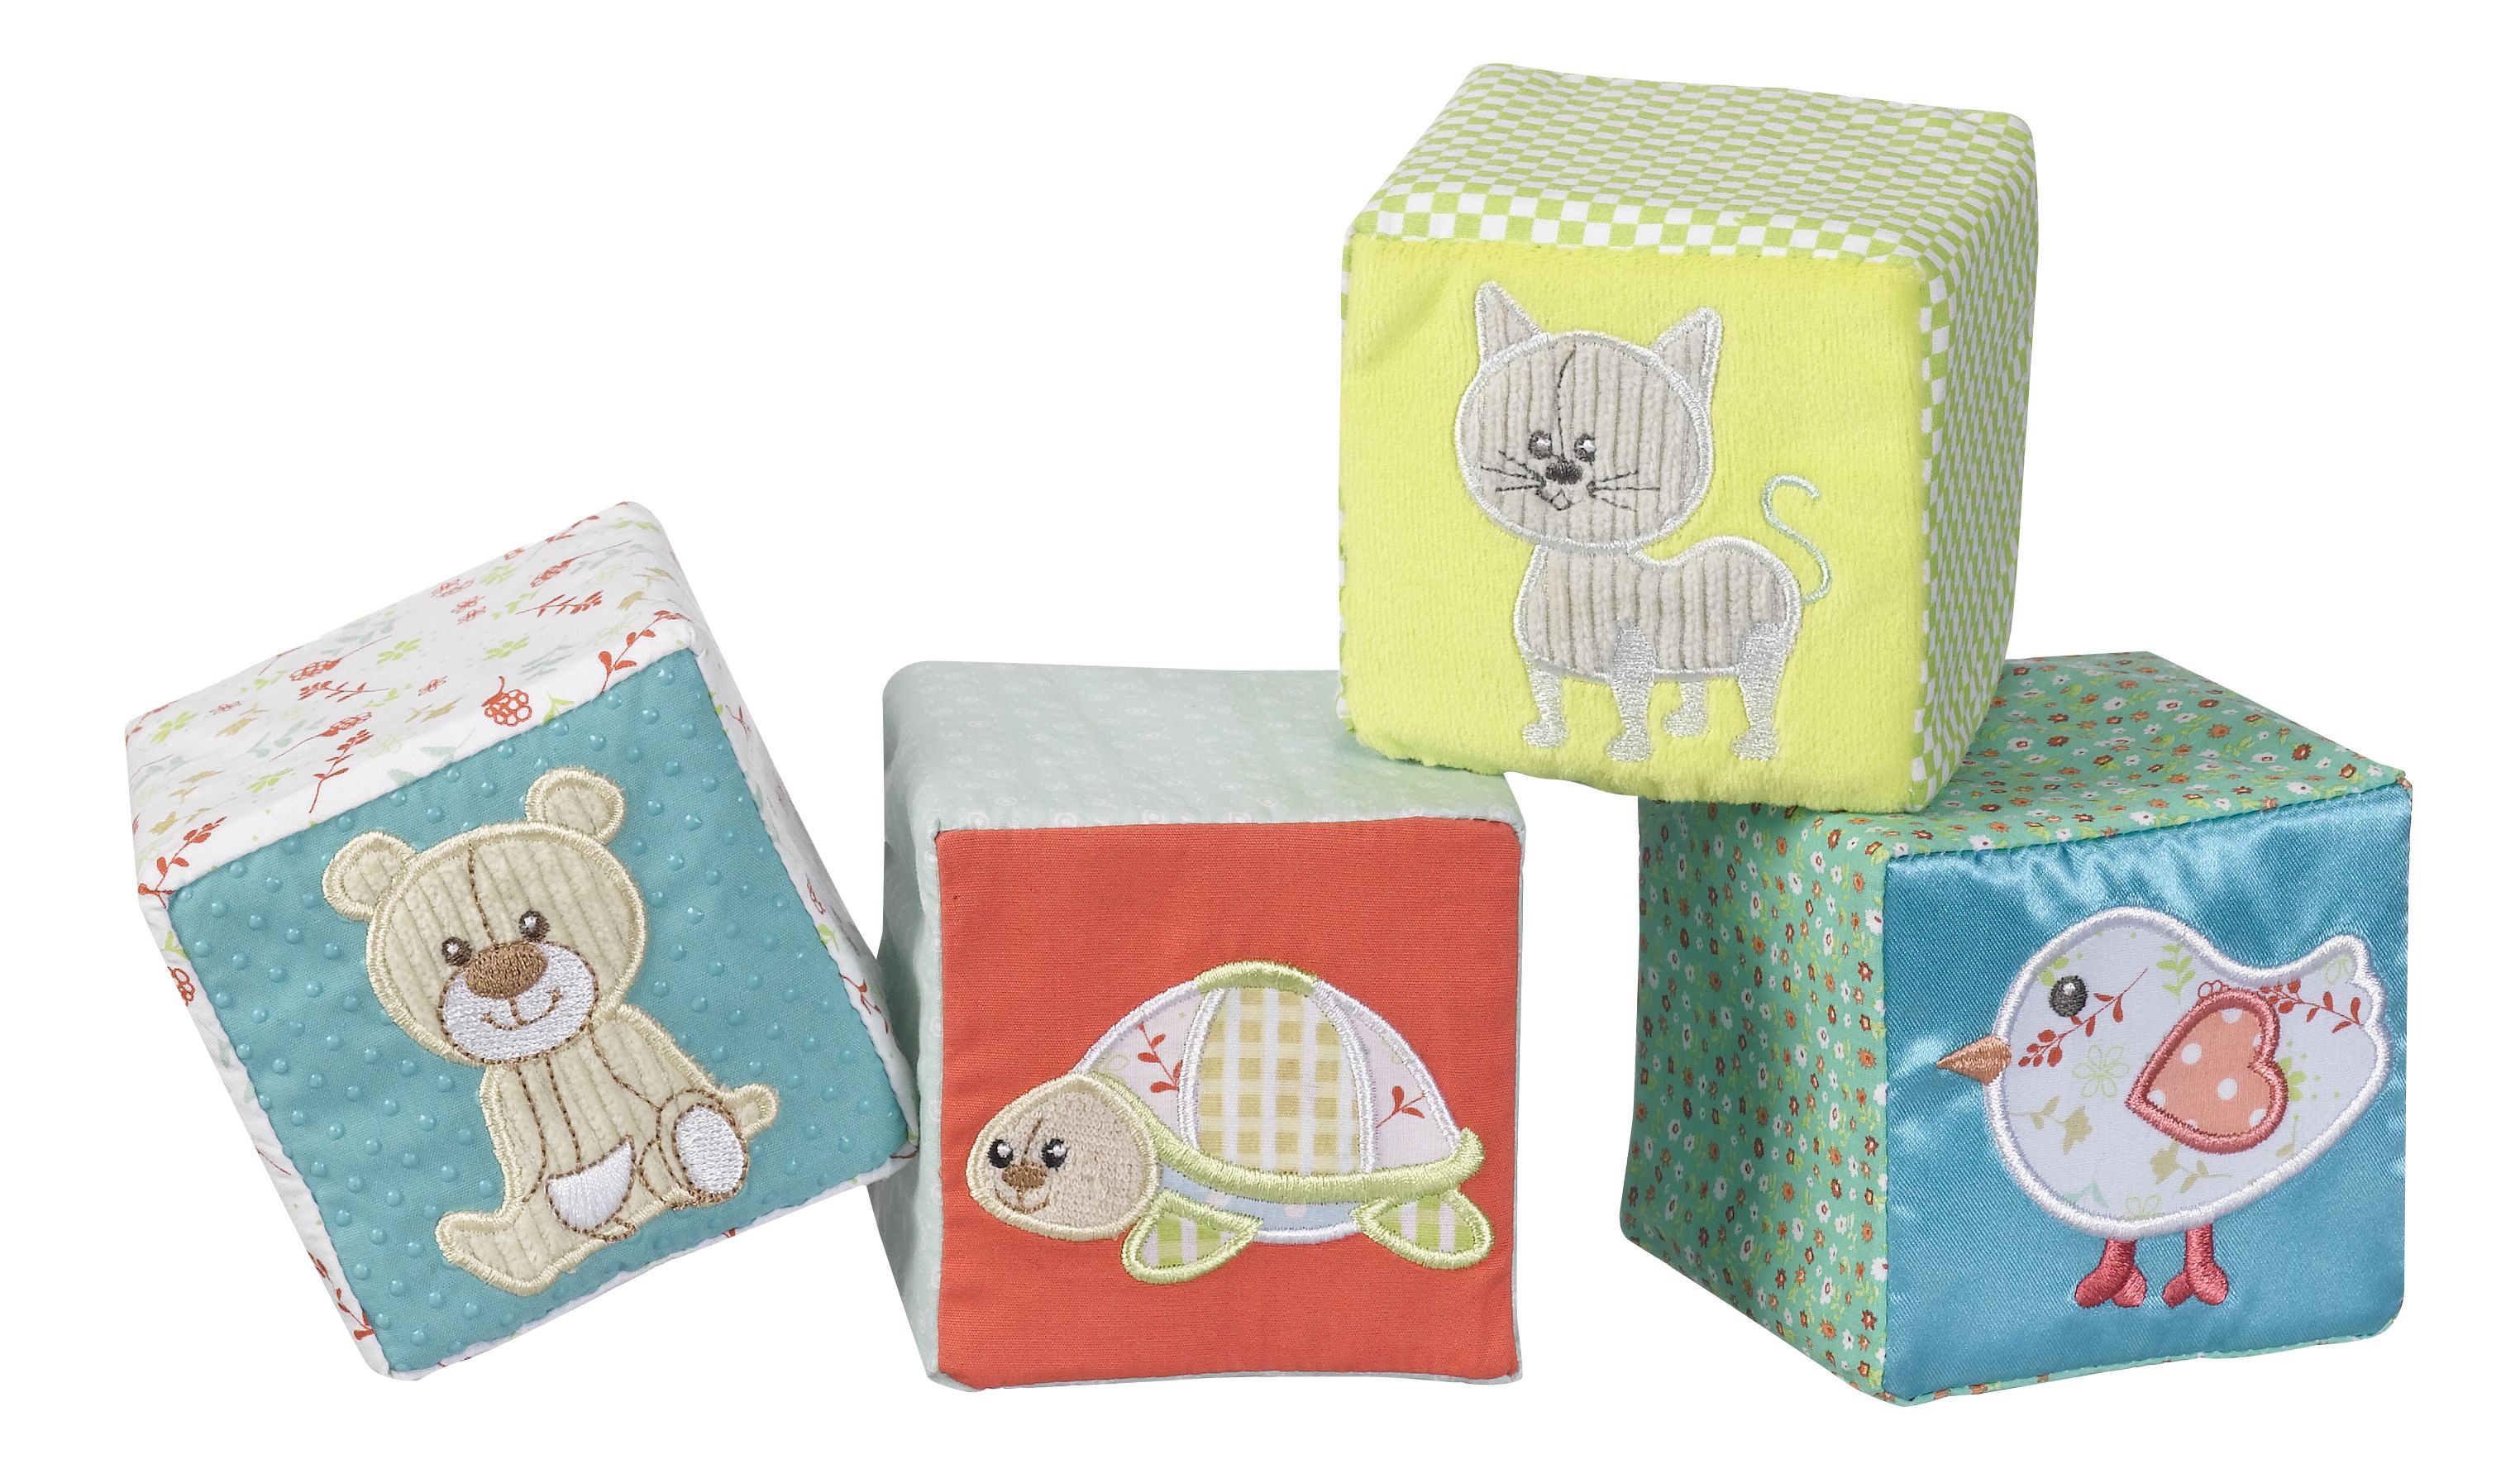 Early Learning Cubes Sophie la girafe